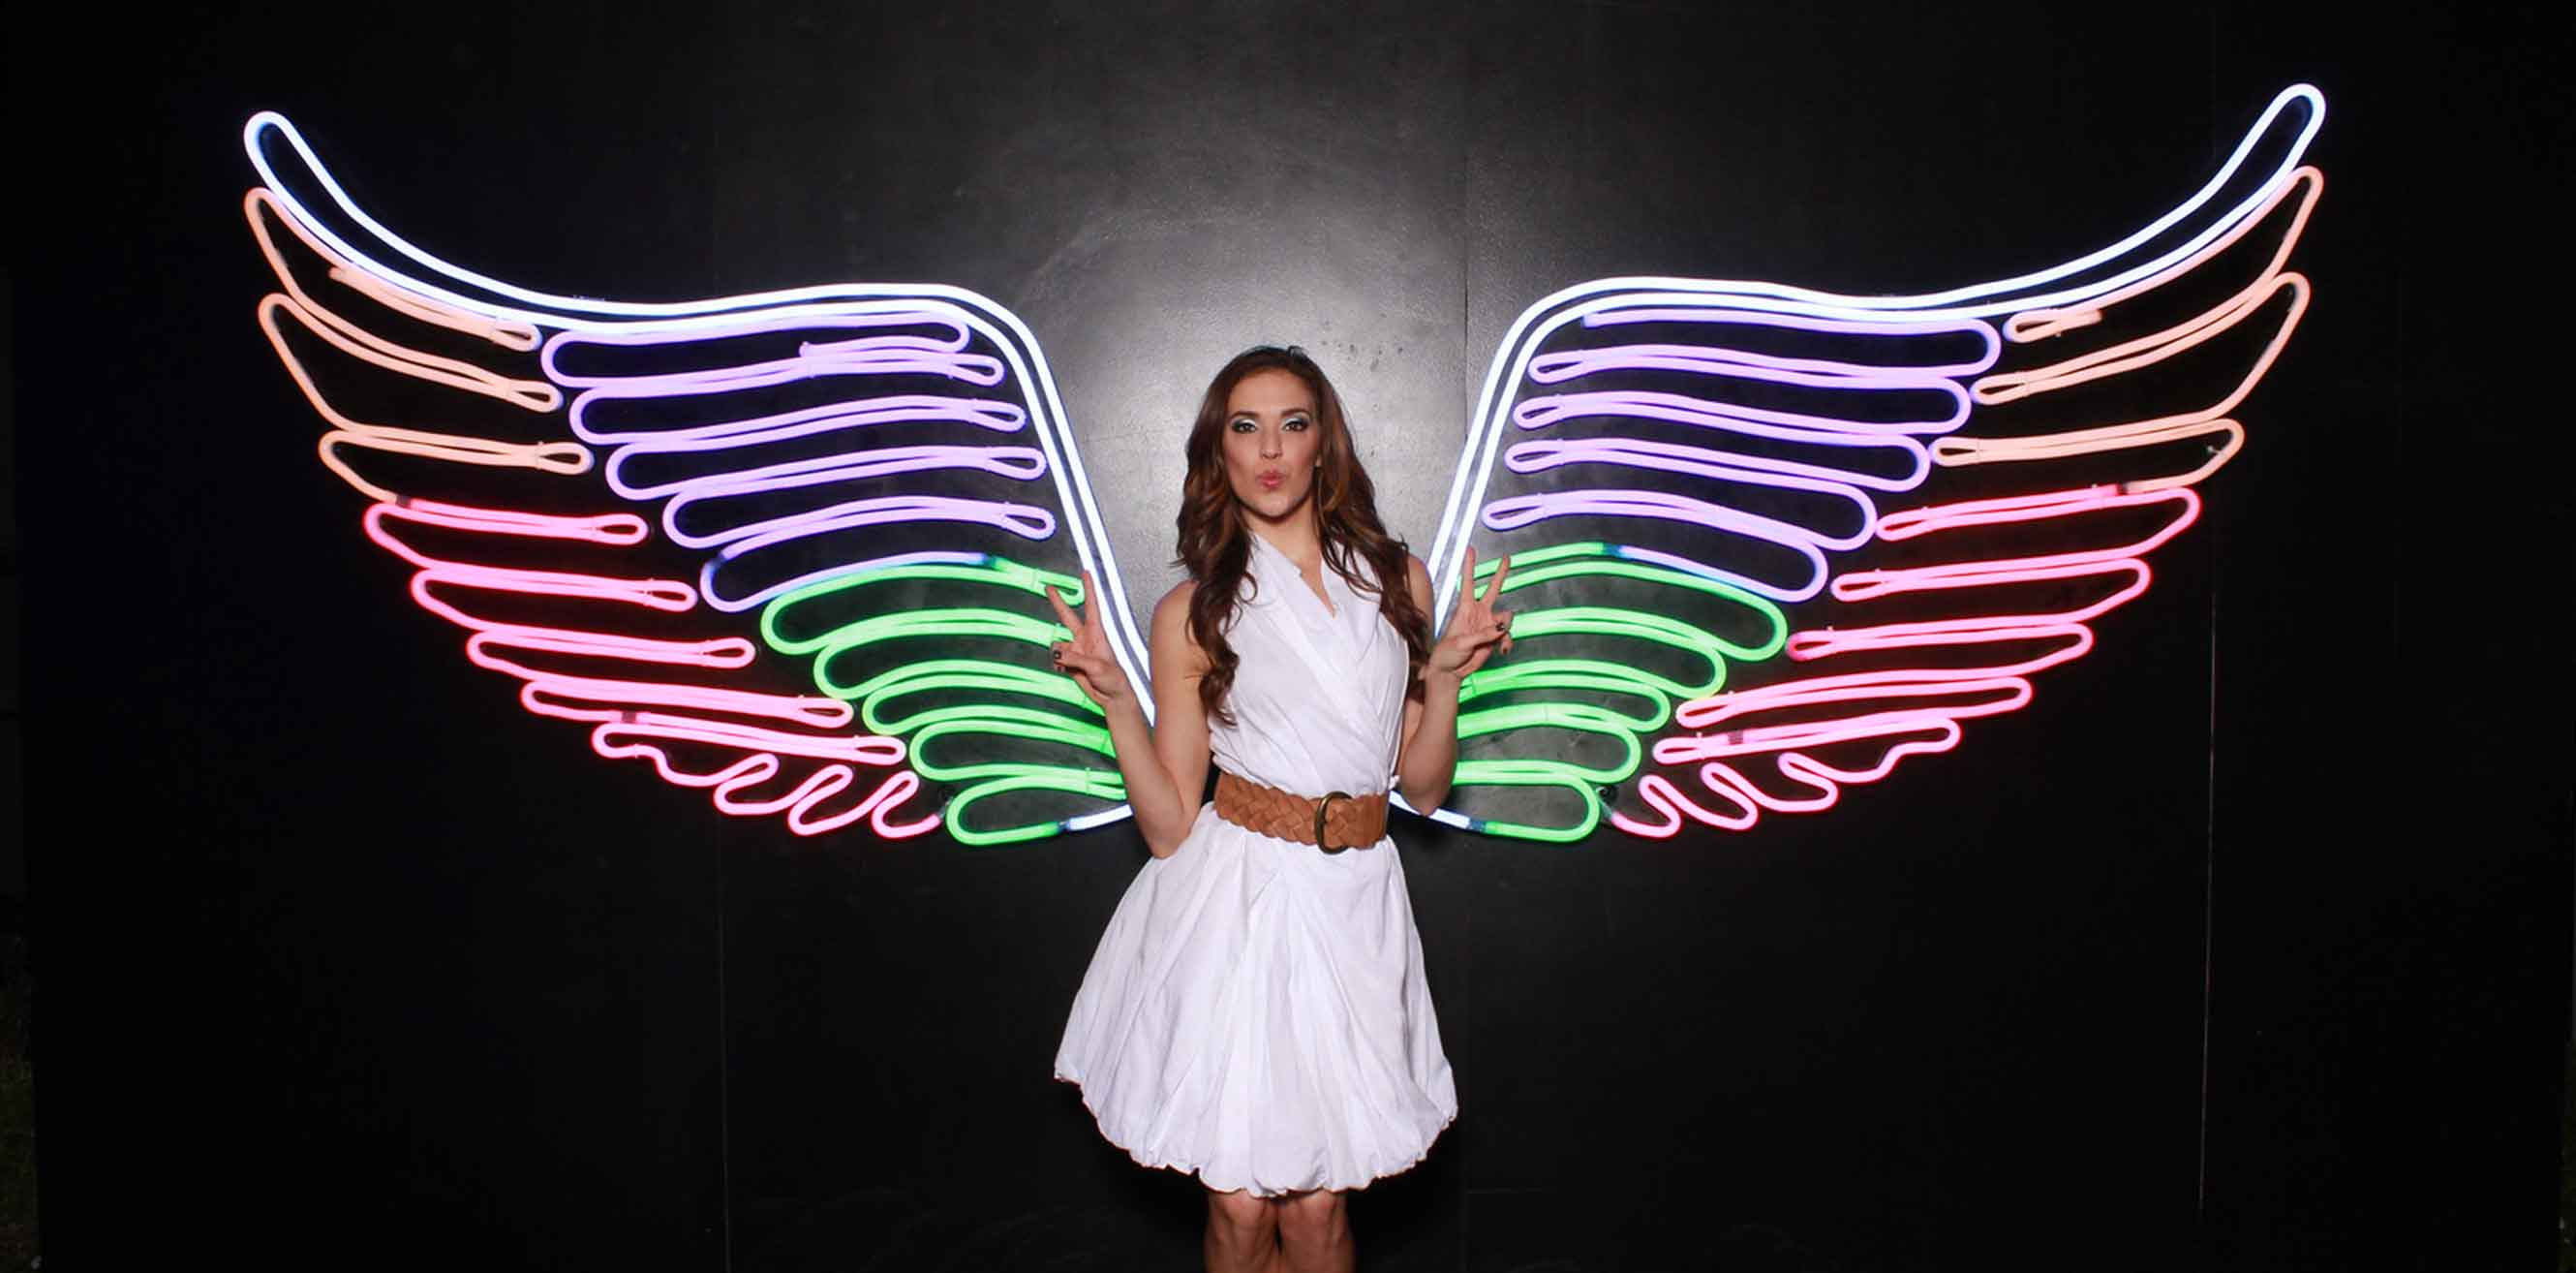 A woman posing in front of neon wings